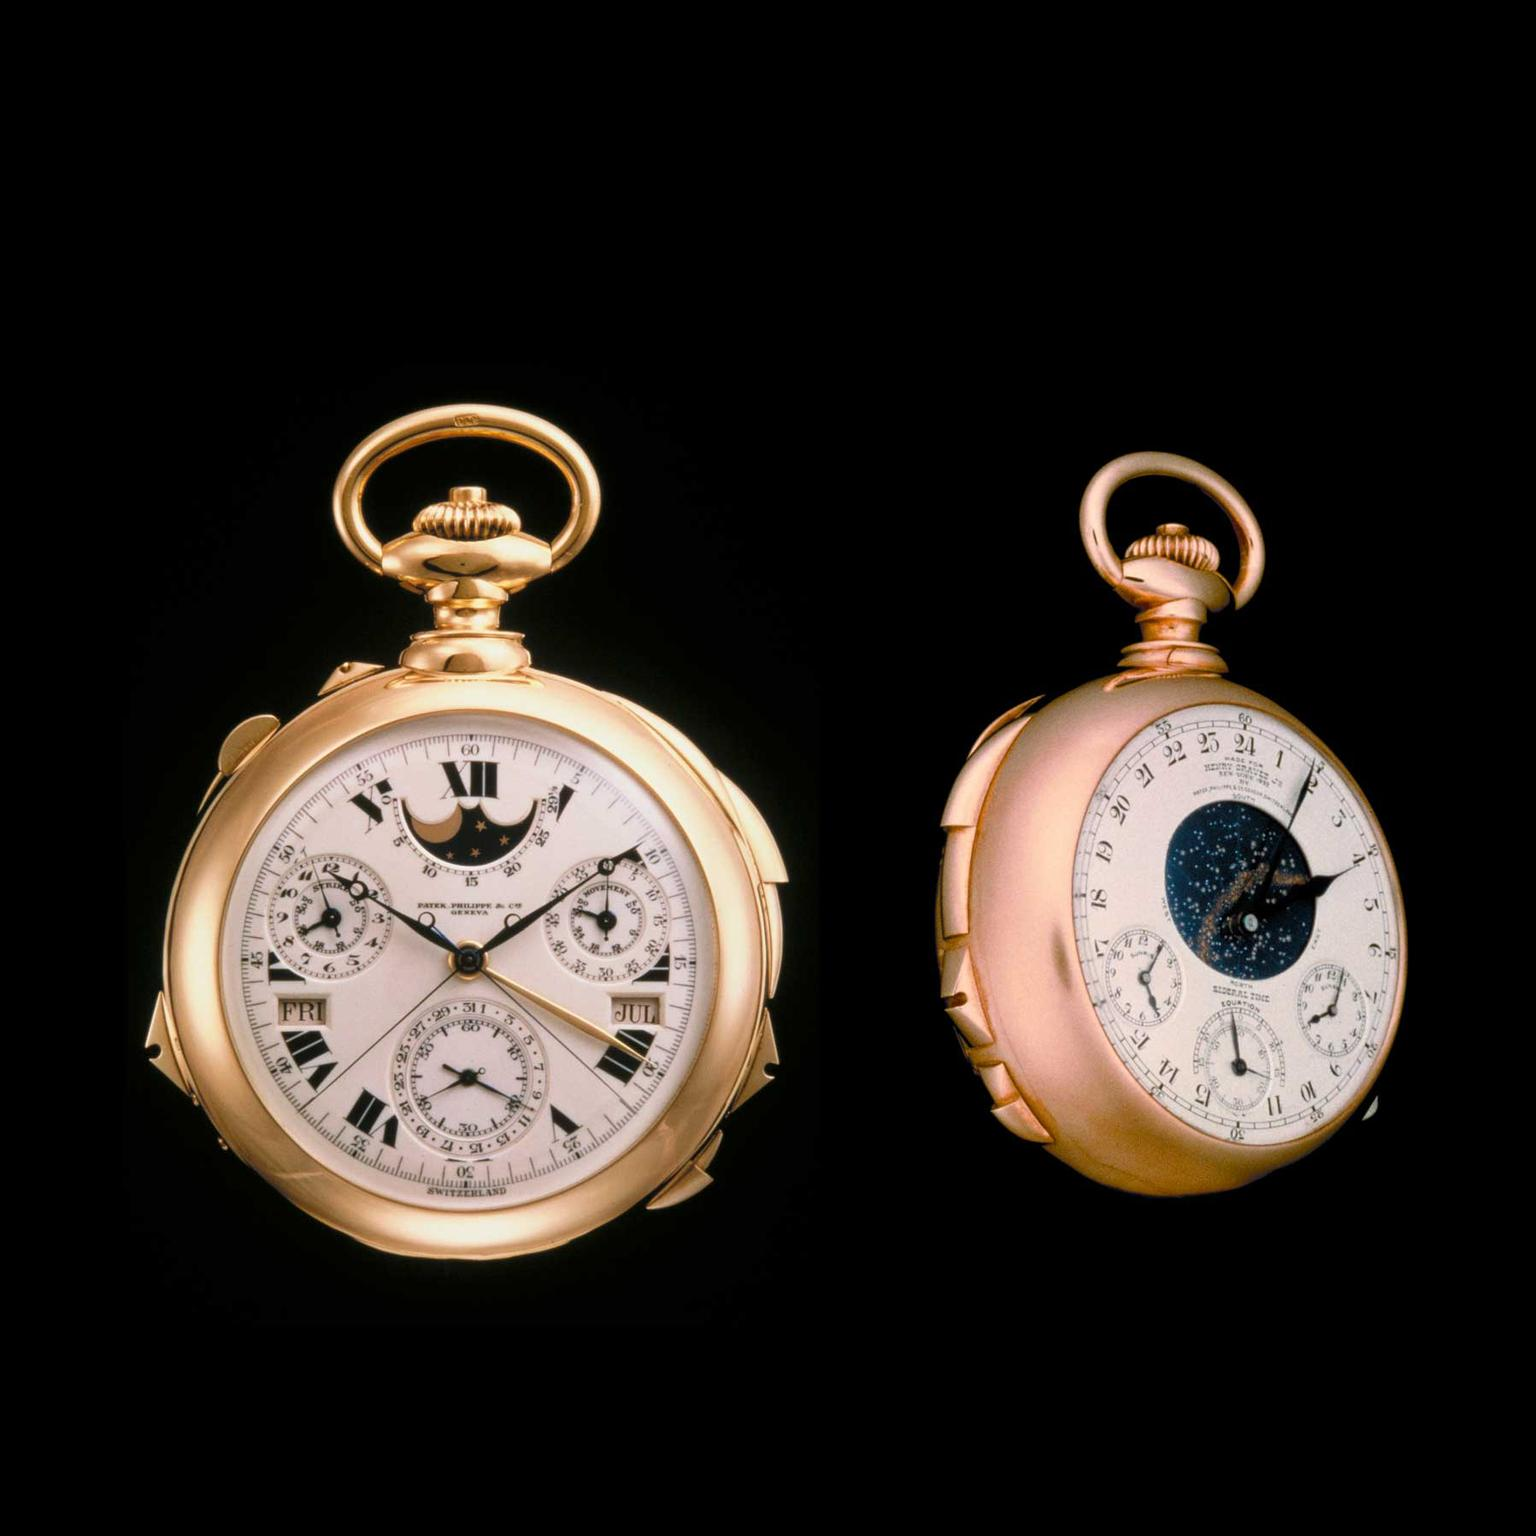 Patek Philippe Graves Supercomplication